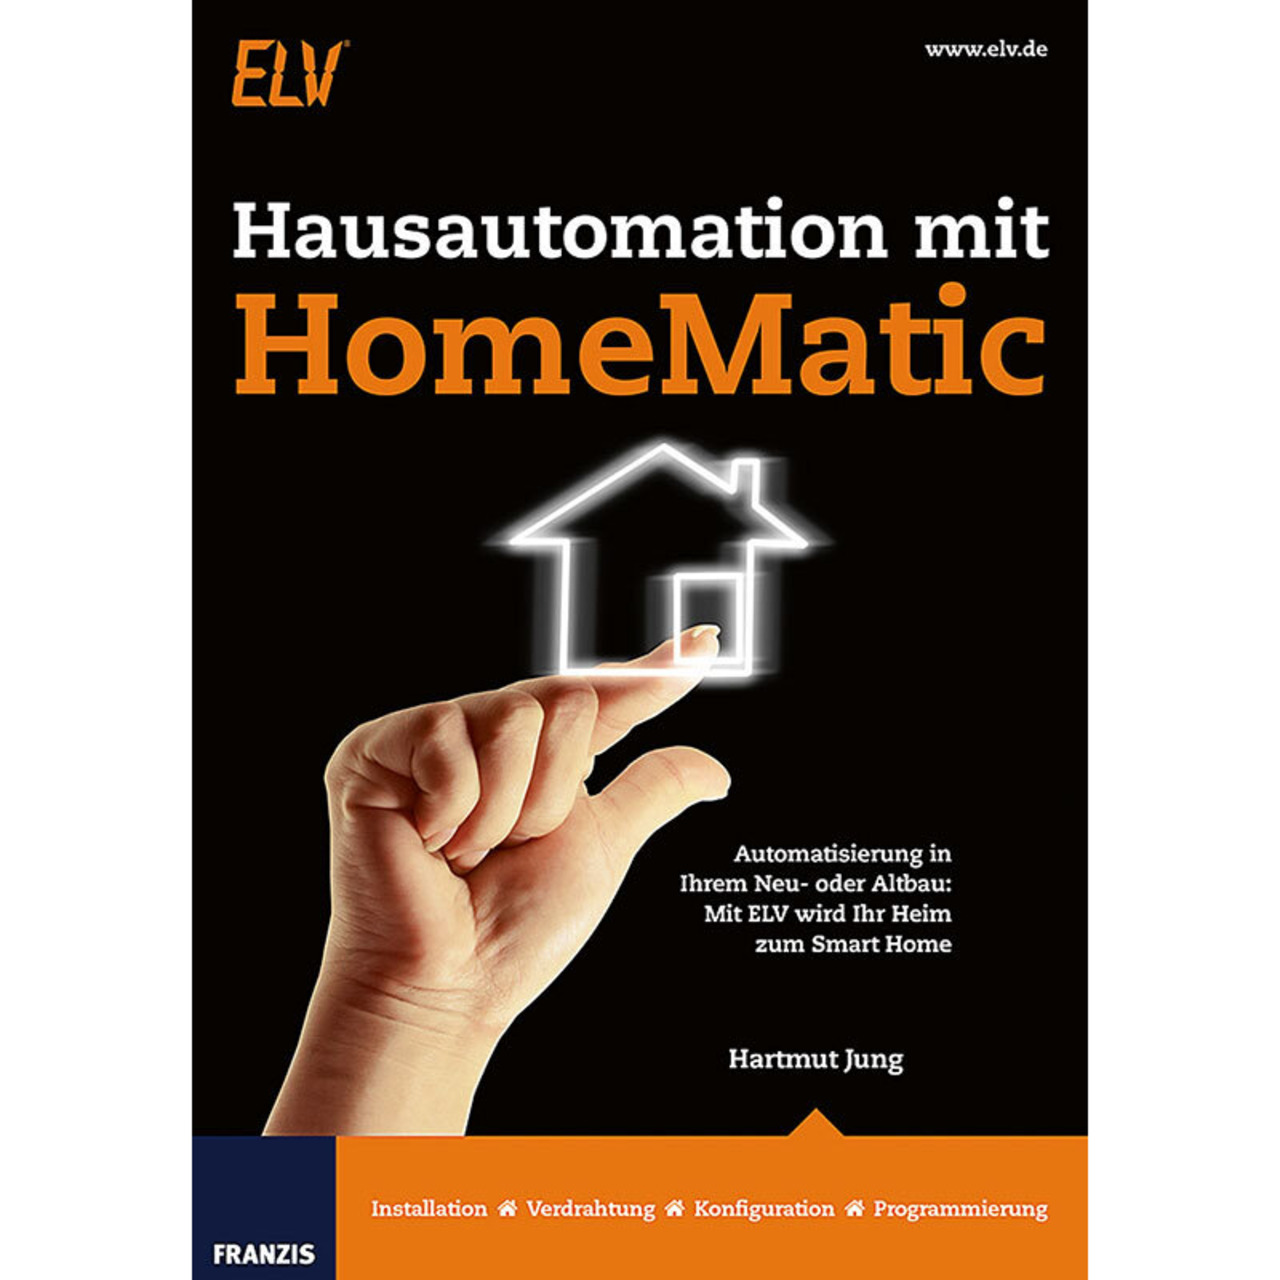 FRANZIS Buch Hausautomation mit Homematic